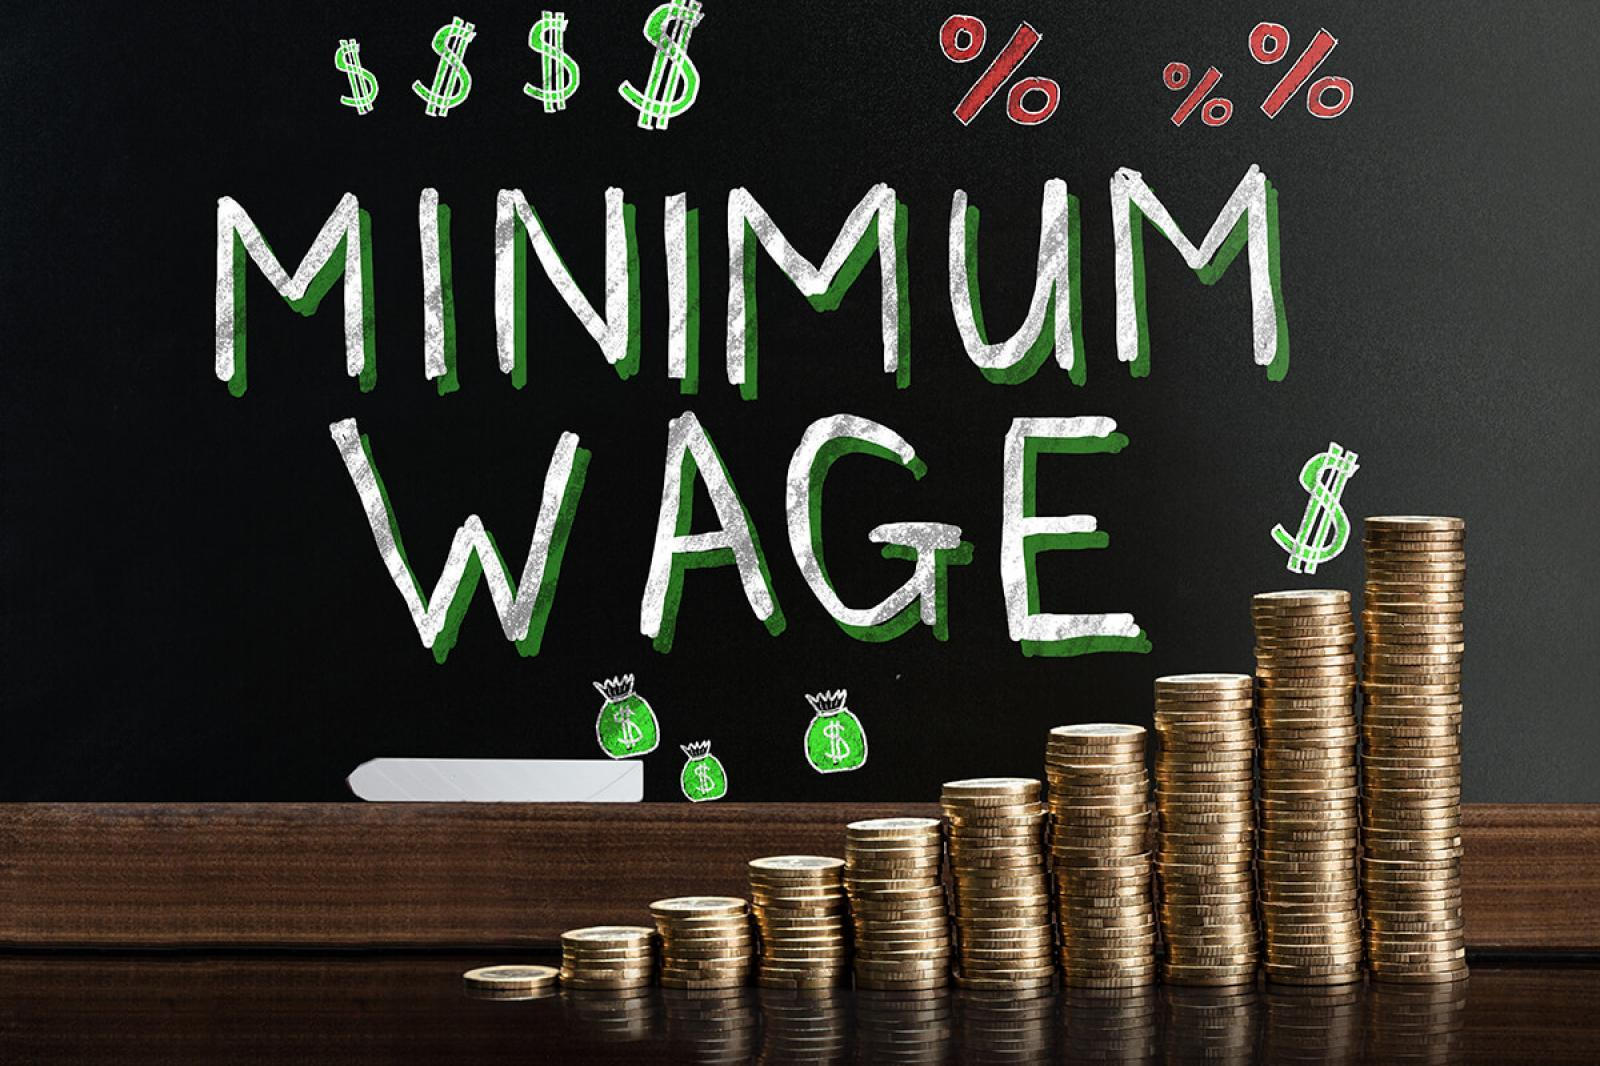 Ontario minimum wage increased by 10 cents